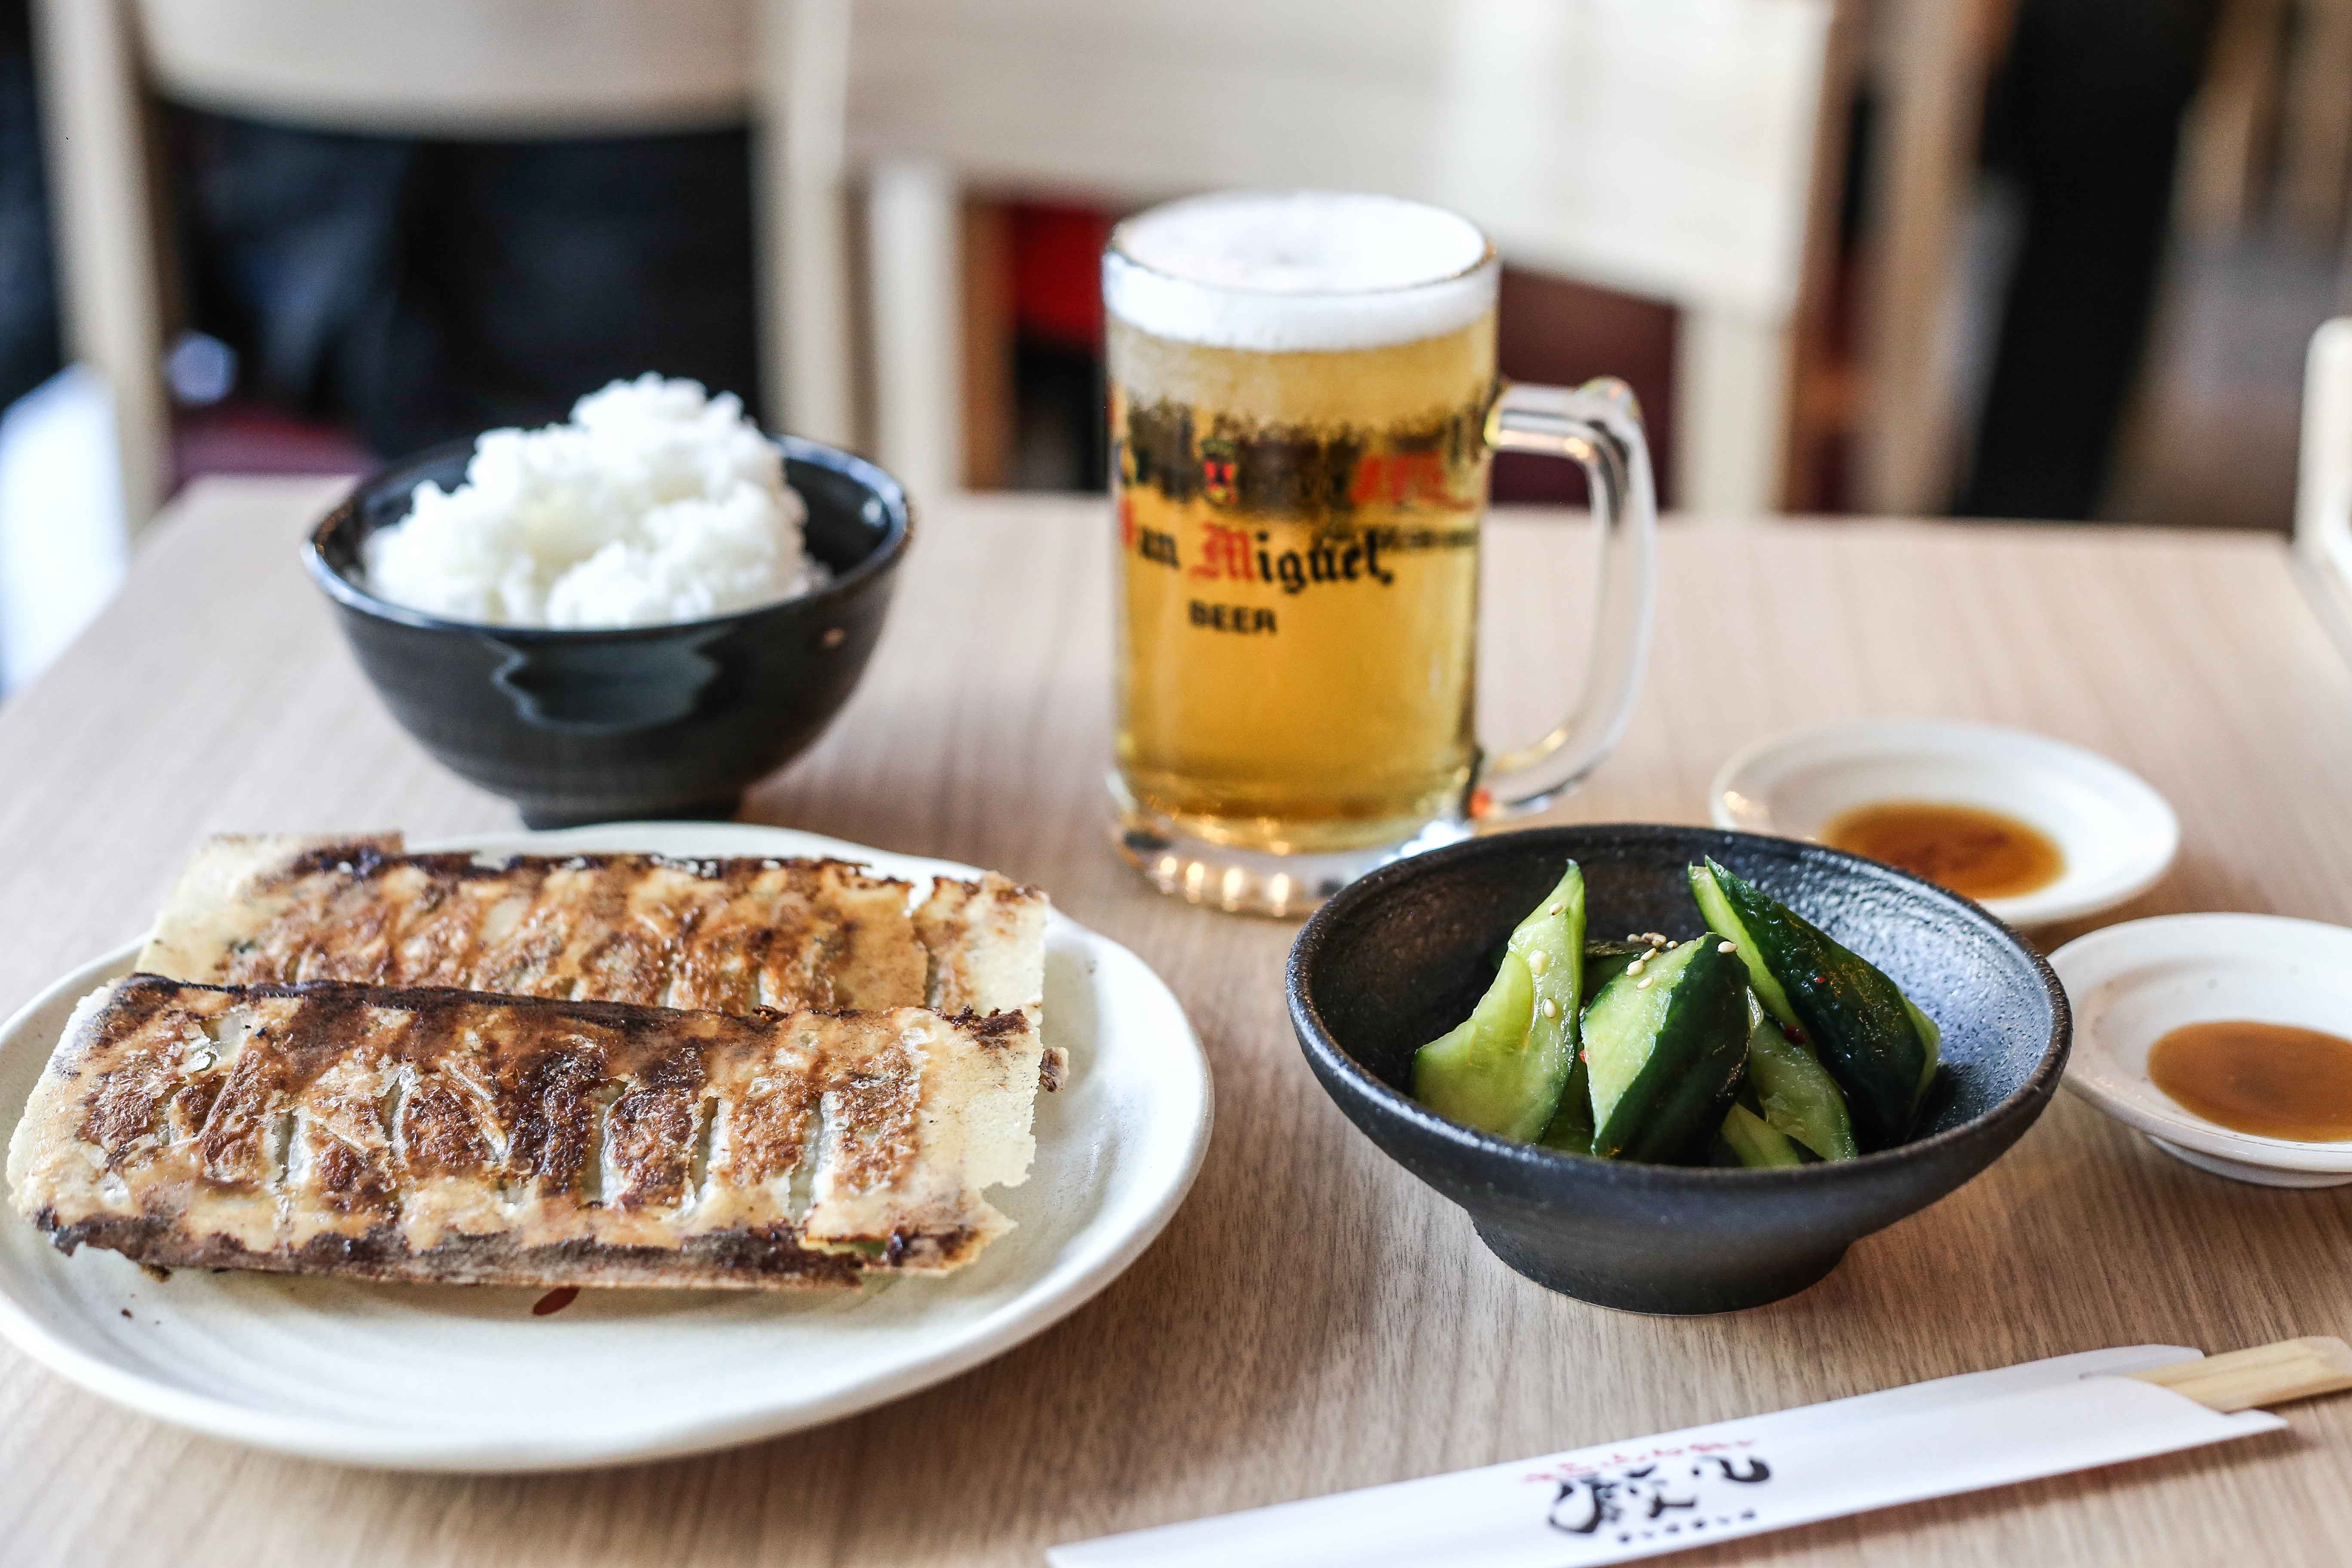 The Chao Chao Gyoza set comes with rice, a glass of beer, and your choice of sides.